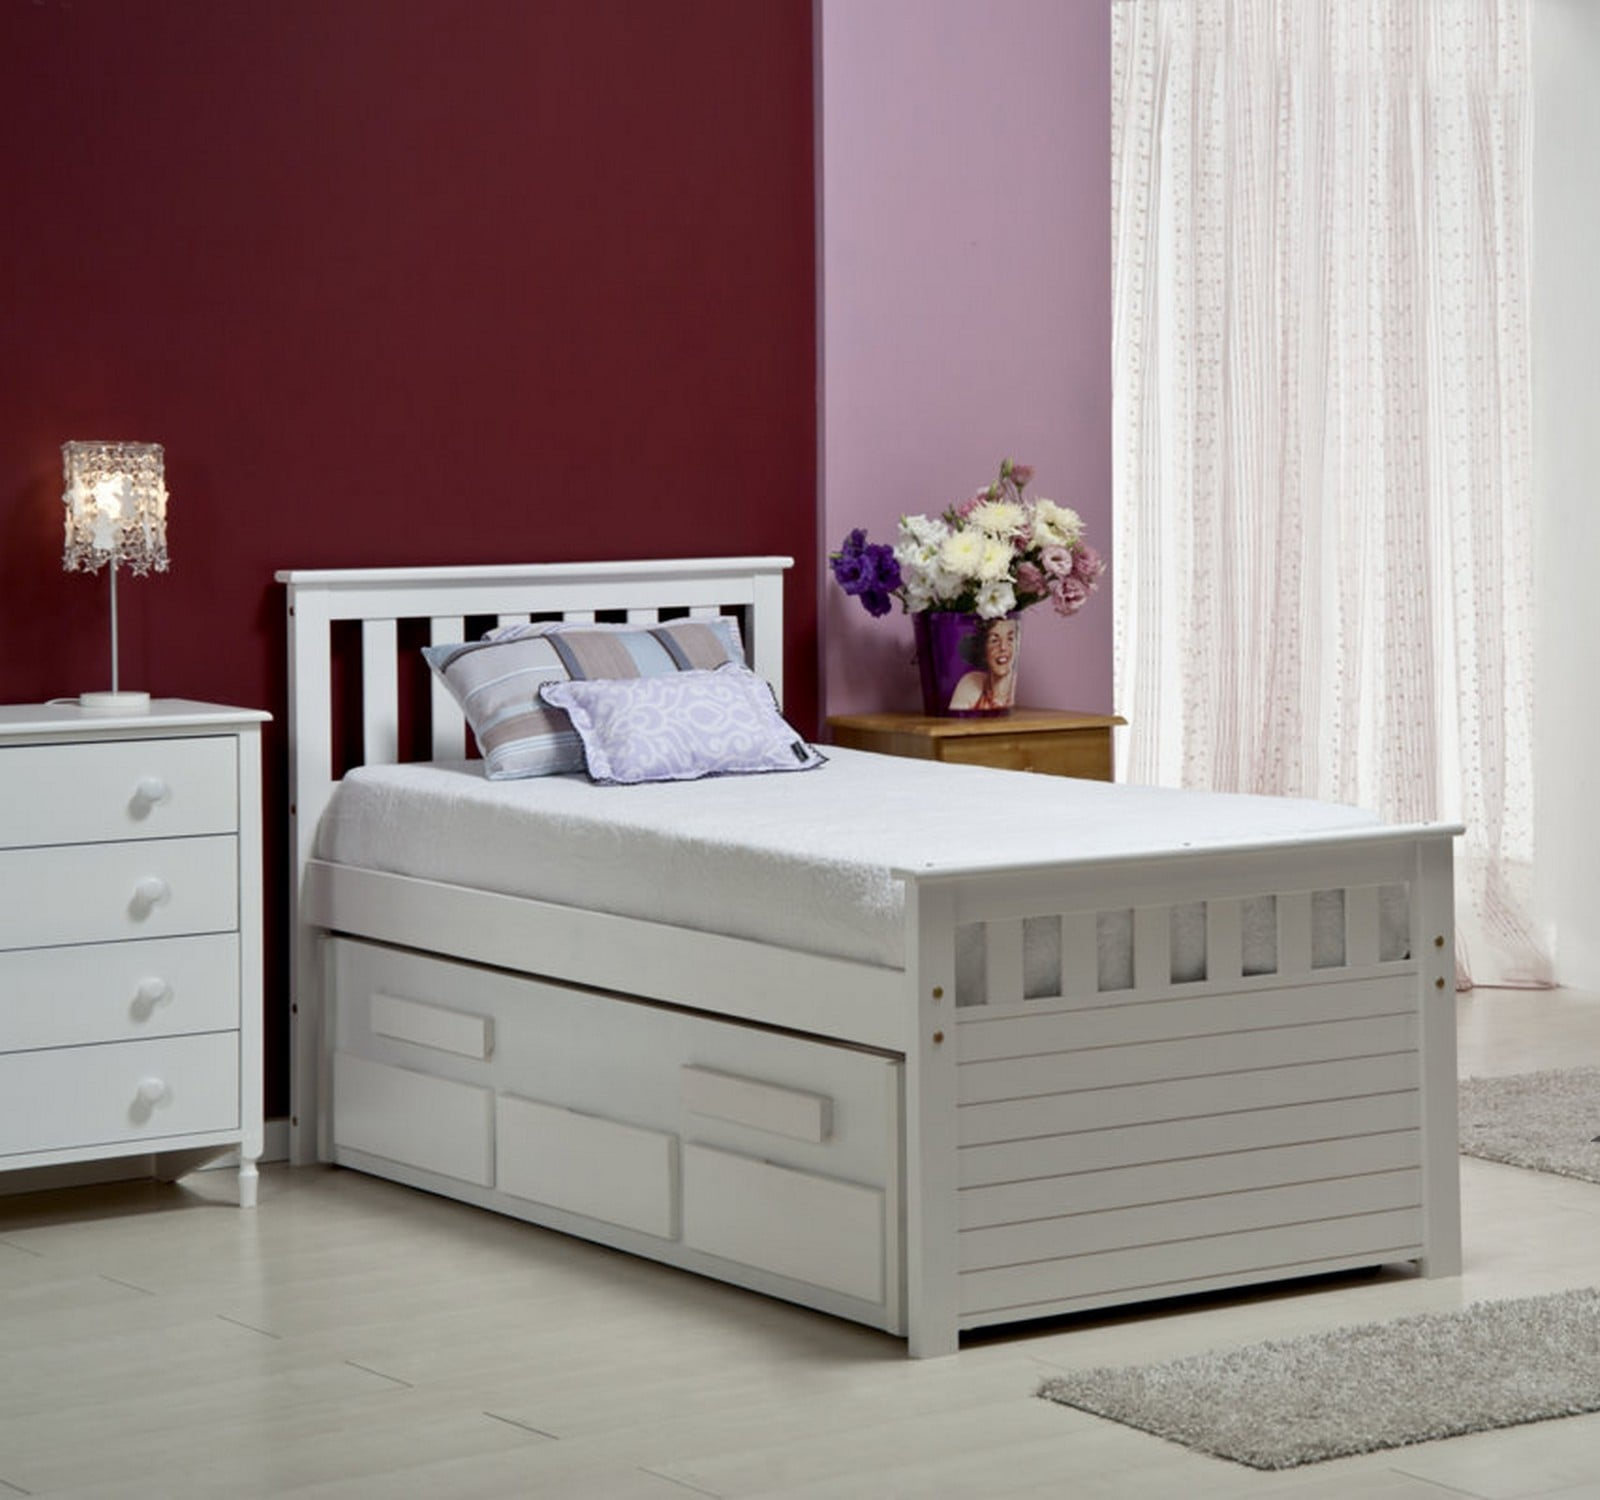 Bergamo Captains Guest Bed - White